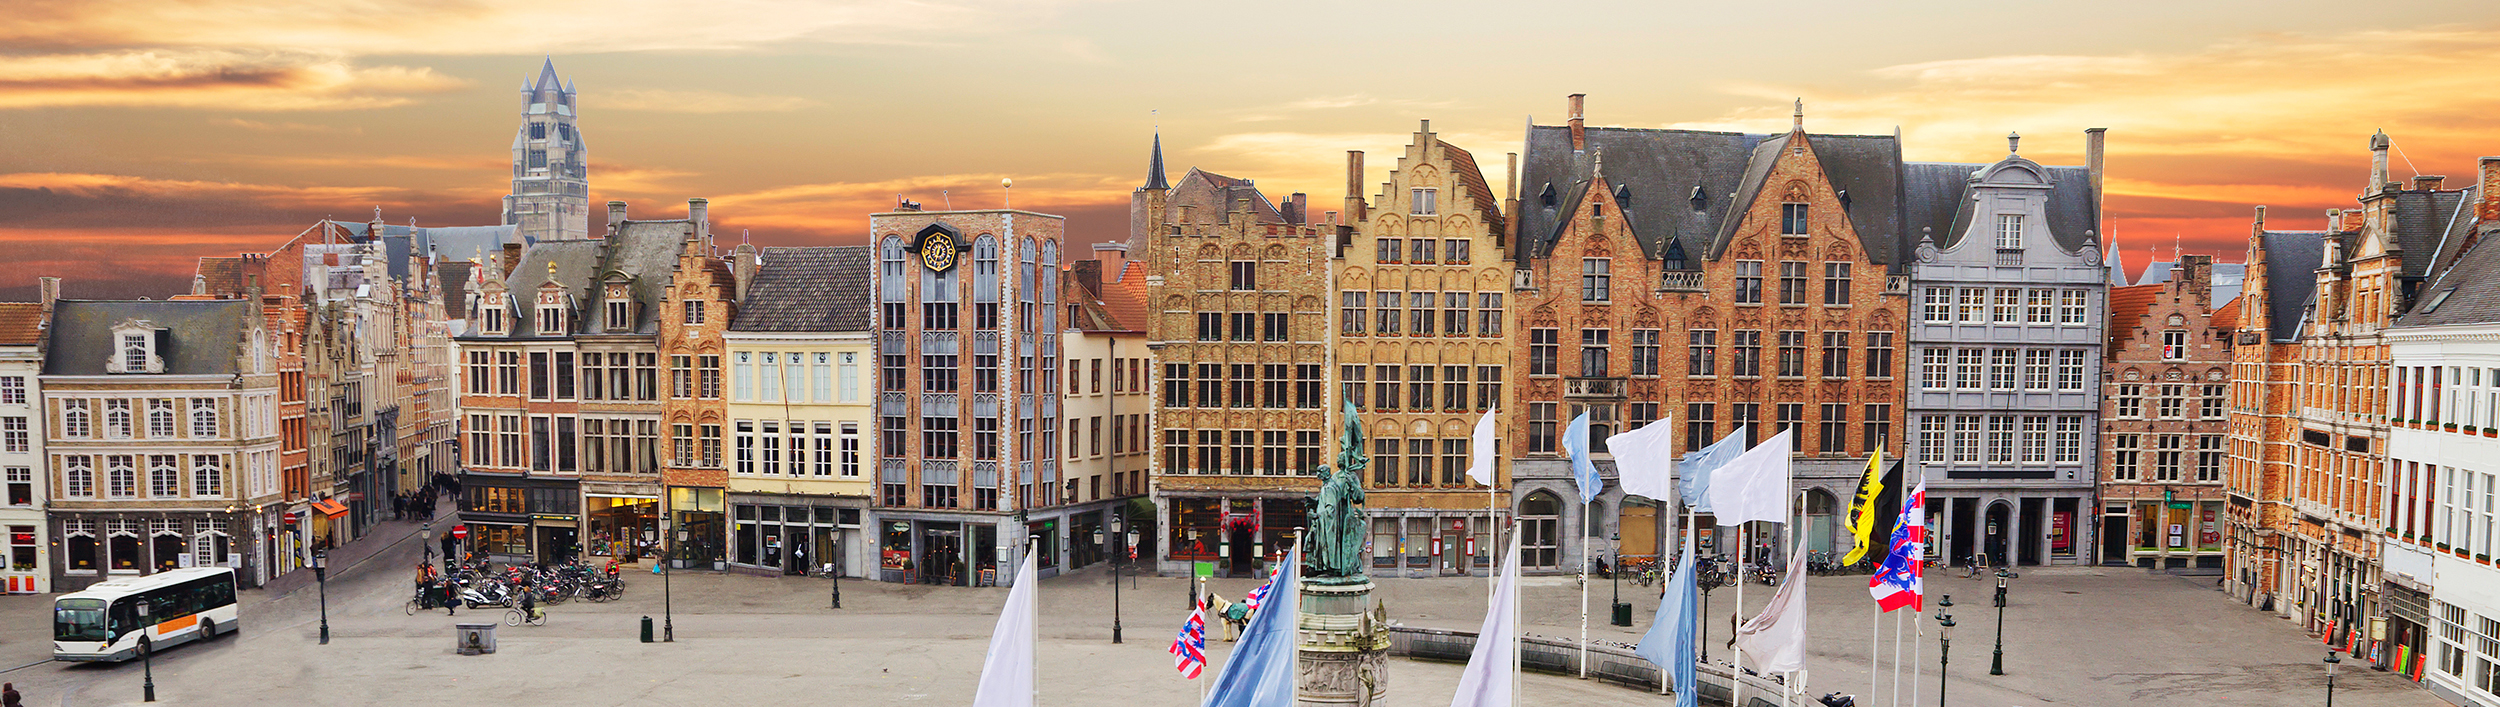 The Markt of Bruges with horse carriage, Belgium